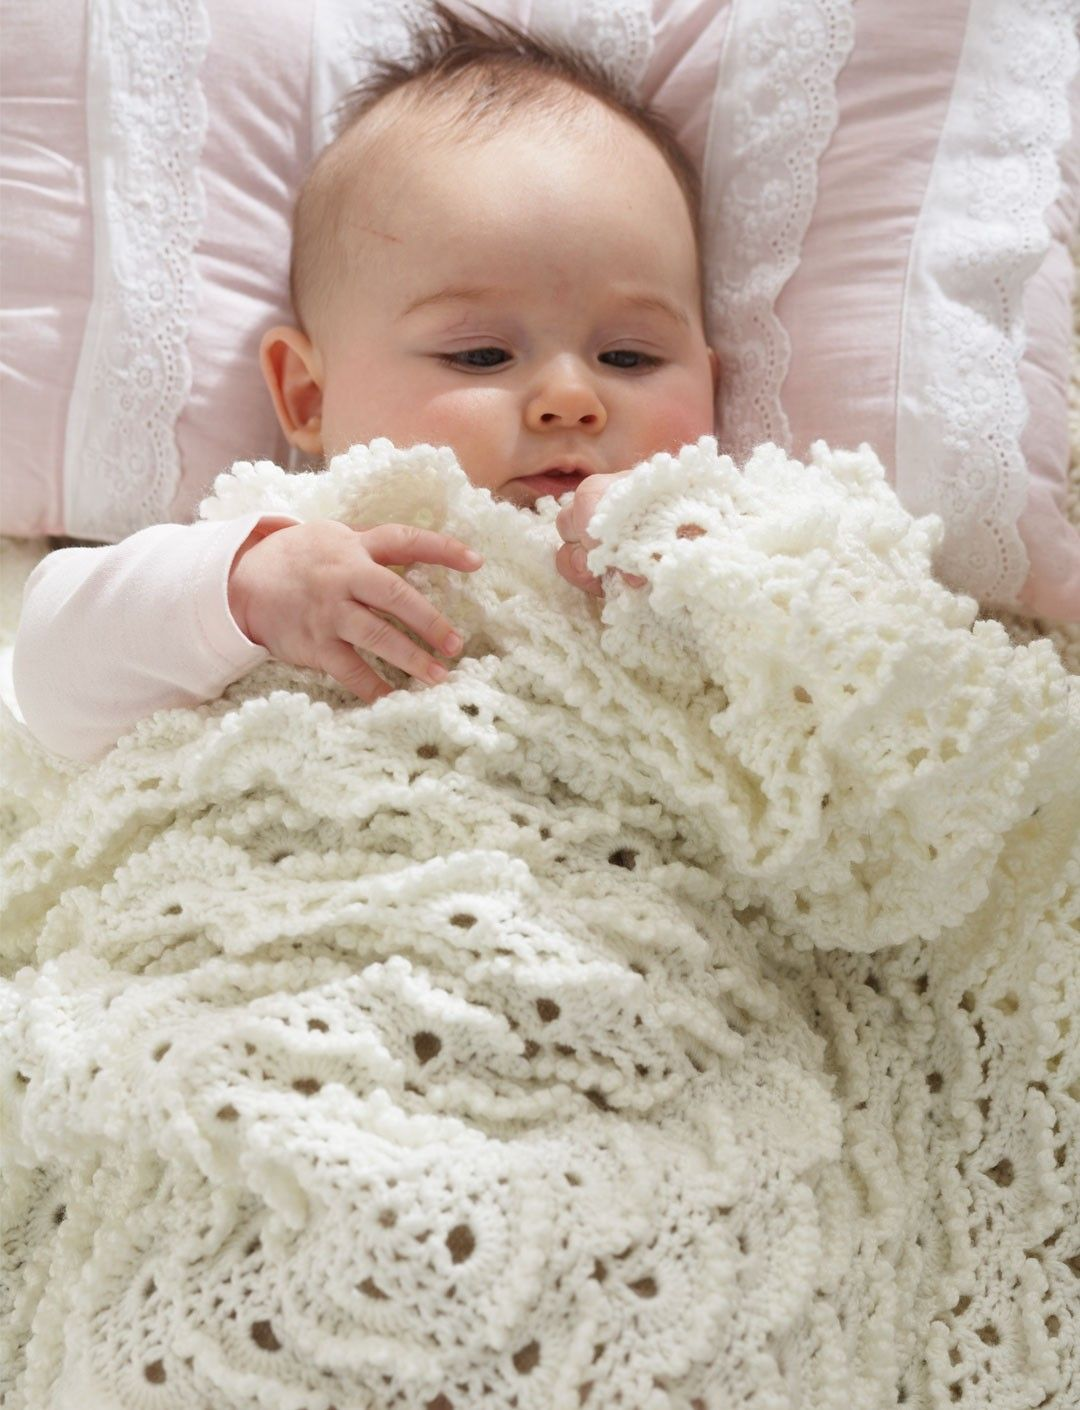 Fluffy Meringue Stitch Blanket | Crochet for babies | Pinterest ...